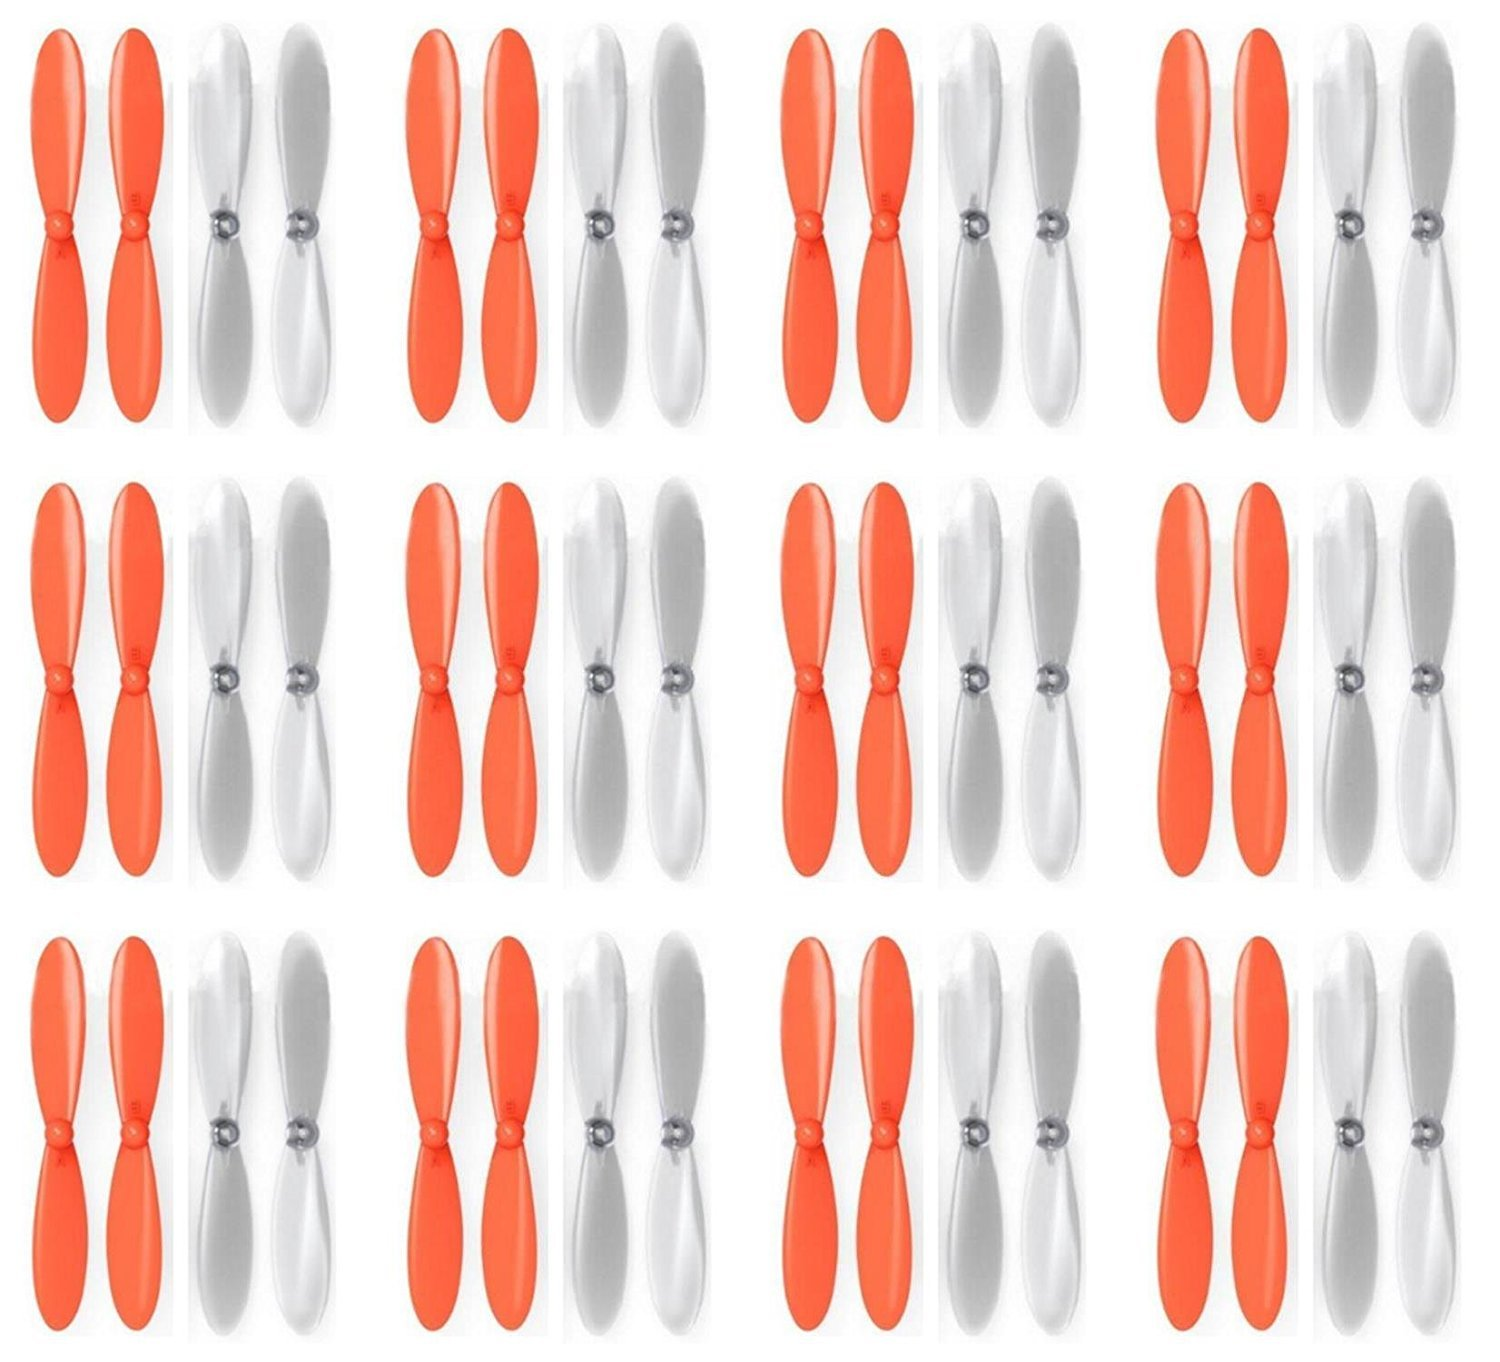 12 x Quantity of Estes Dart Orange Clear Propeller Blades Props Propellers Transparent - FAST FROM Orlando, Florida USA